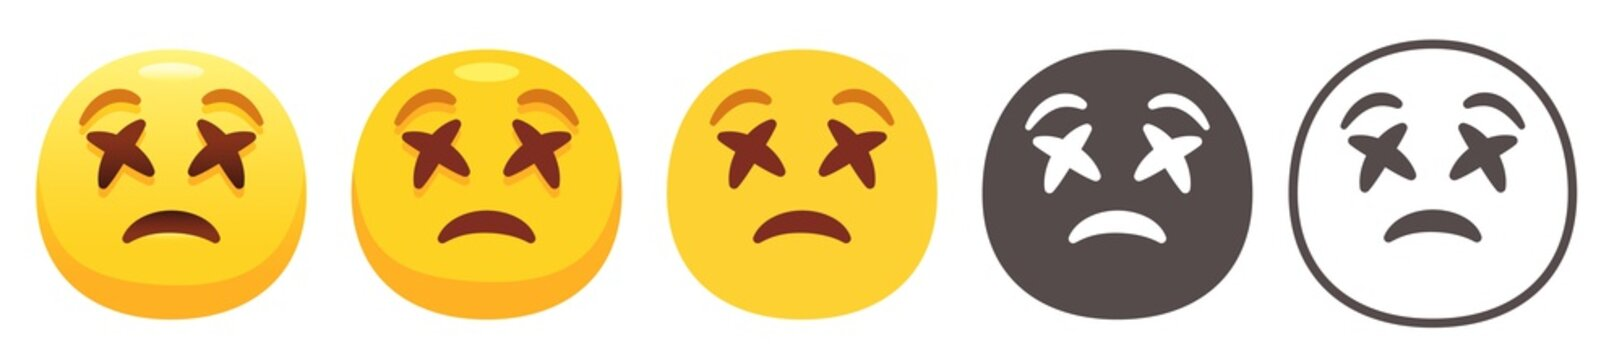 Dizzy emoji. Yellow face with X Cross eyes and sad smile. Dead flat vector icon set